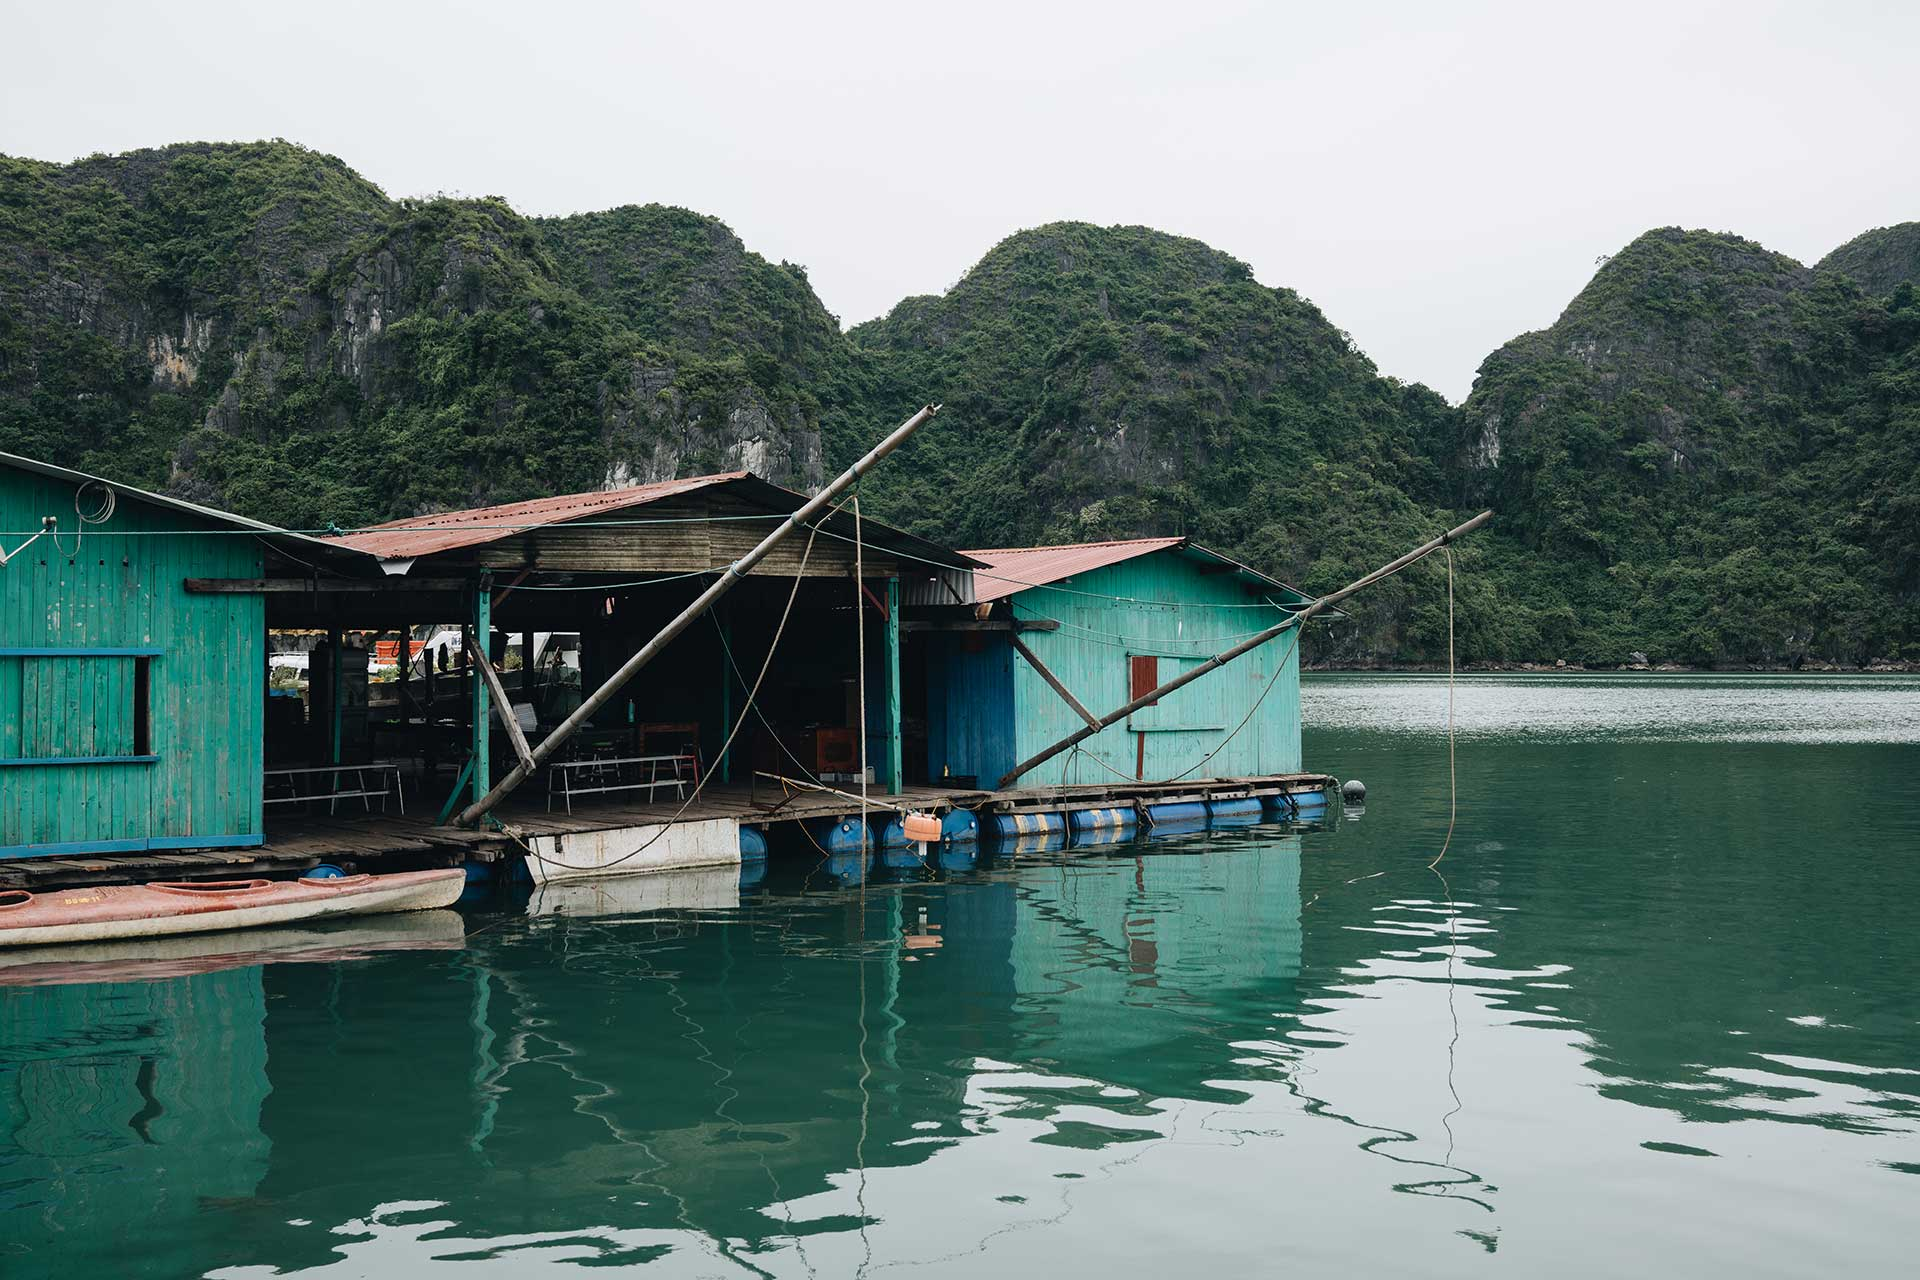 Ha Long Pearl Museum - You'll learn all about pearls and oysters at this combo farm / museum. At the end of the tour, you'll get a chance to check out their jewelry store.